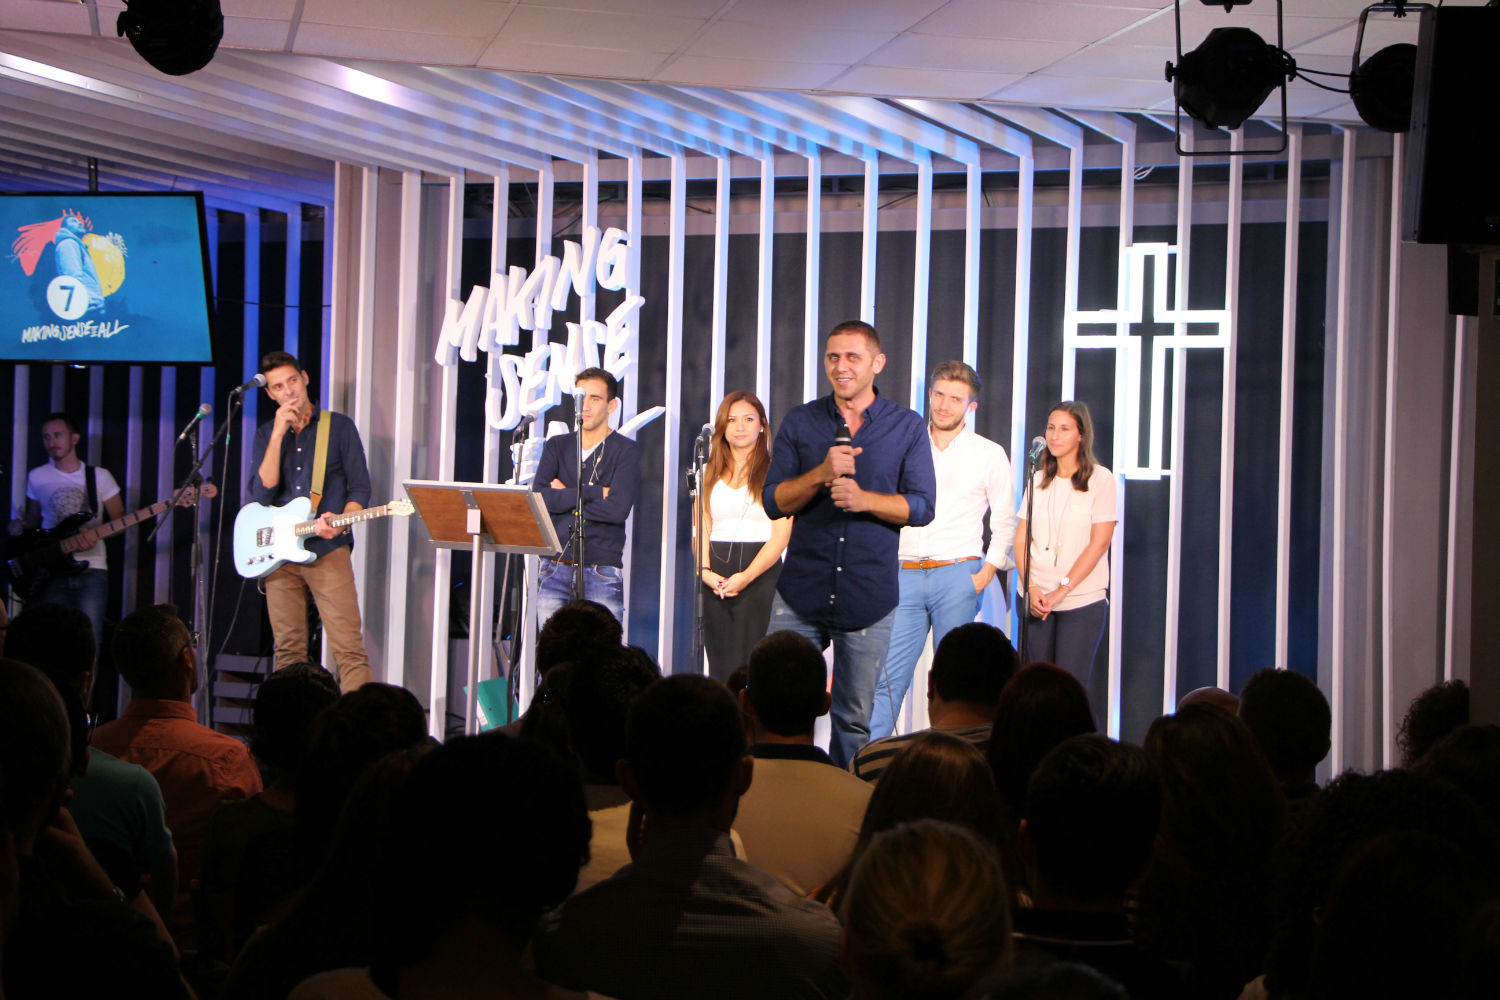 youthfellowship_7_preparty_18102016_ (22)-w1500-h1500